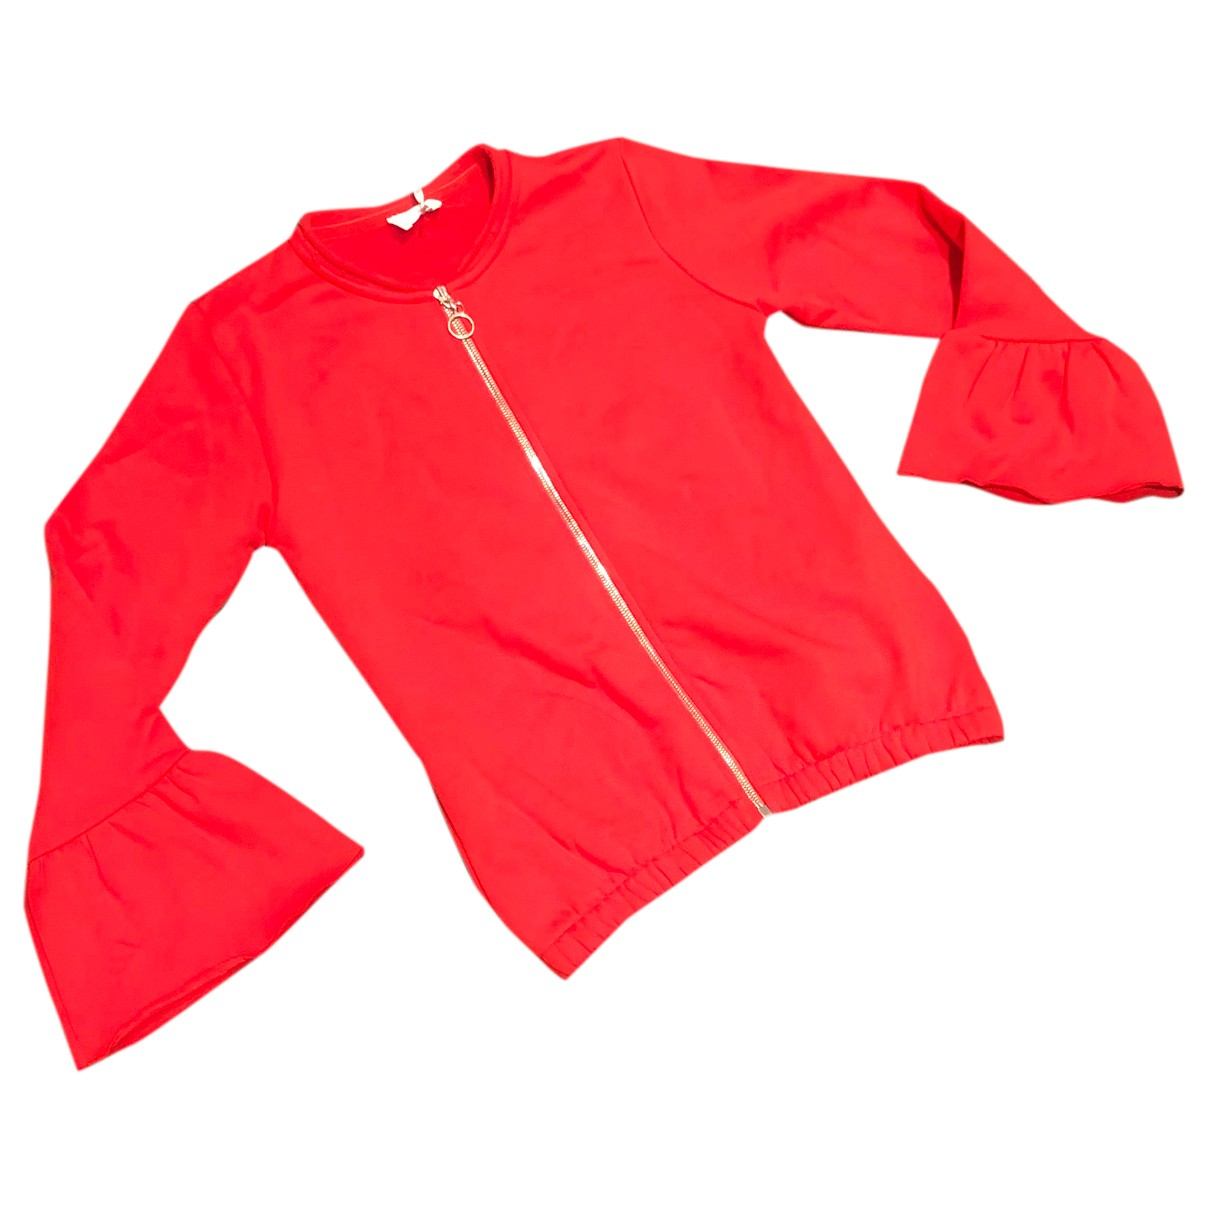 Pinko N Red Cotton jacket & coat for Kids 12 years - XS FR